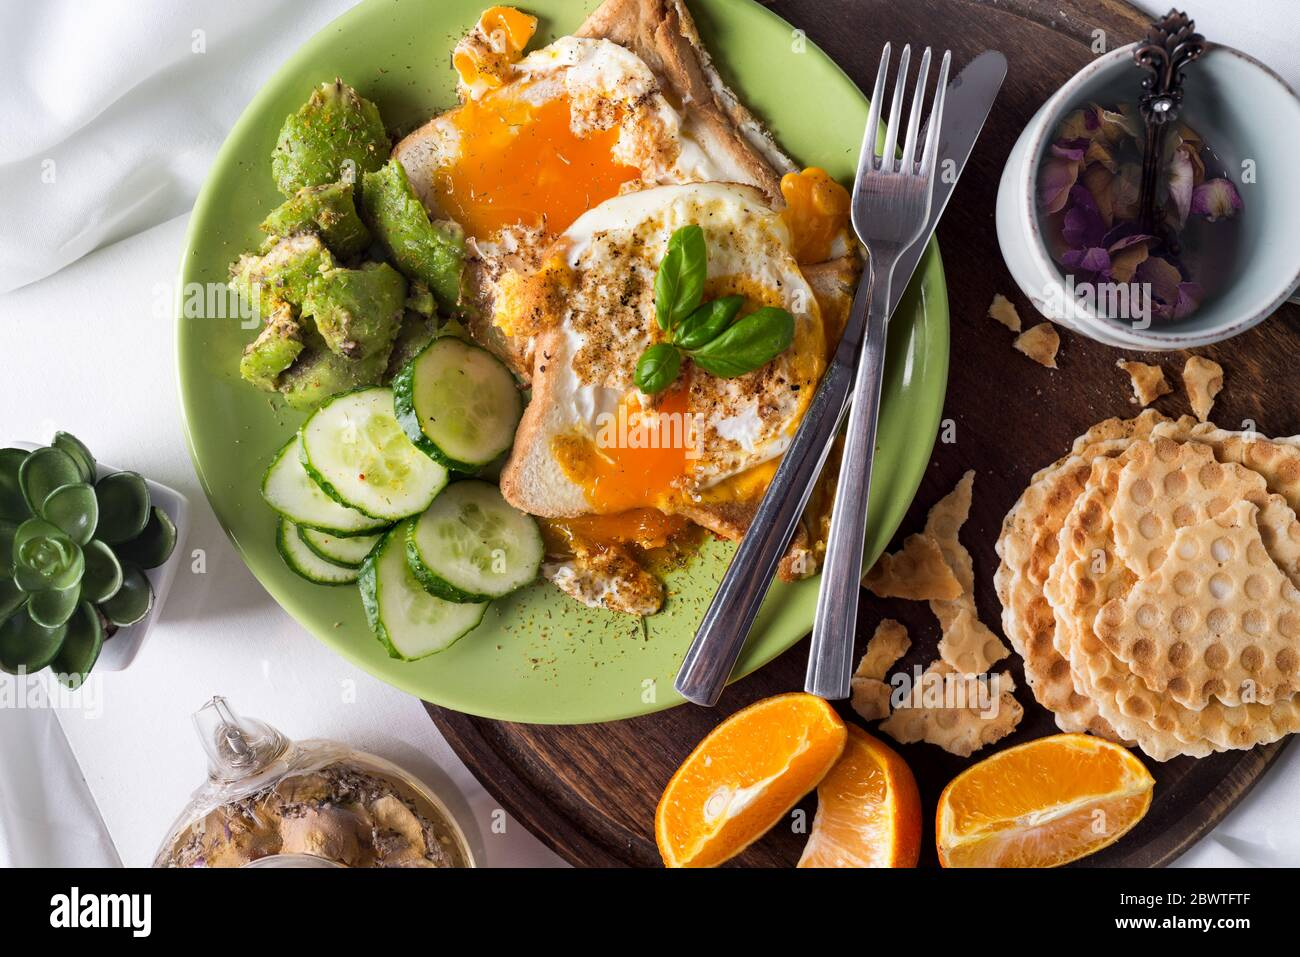 Concept Of Breakfast In Bed Healthy Breakfast Flat Lay Stock Photo Alamy